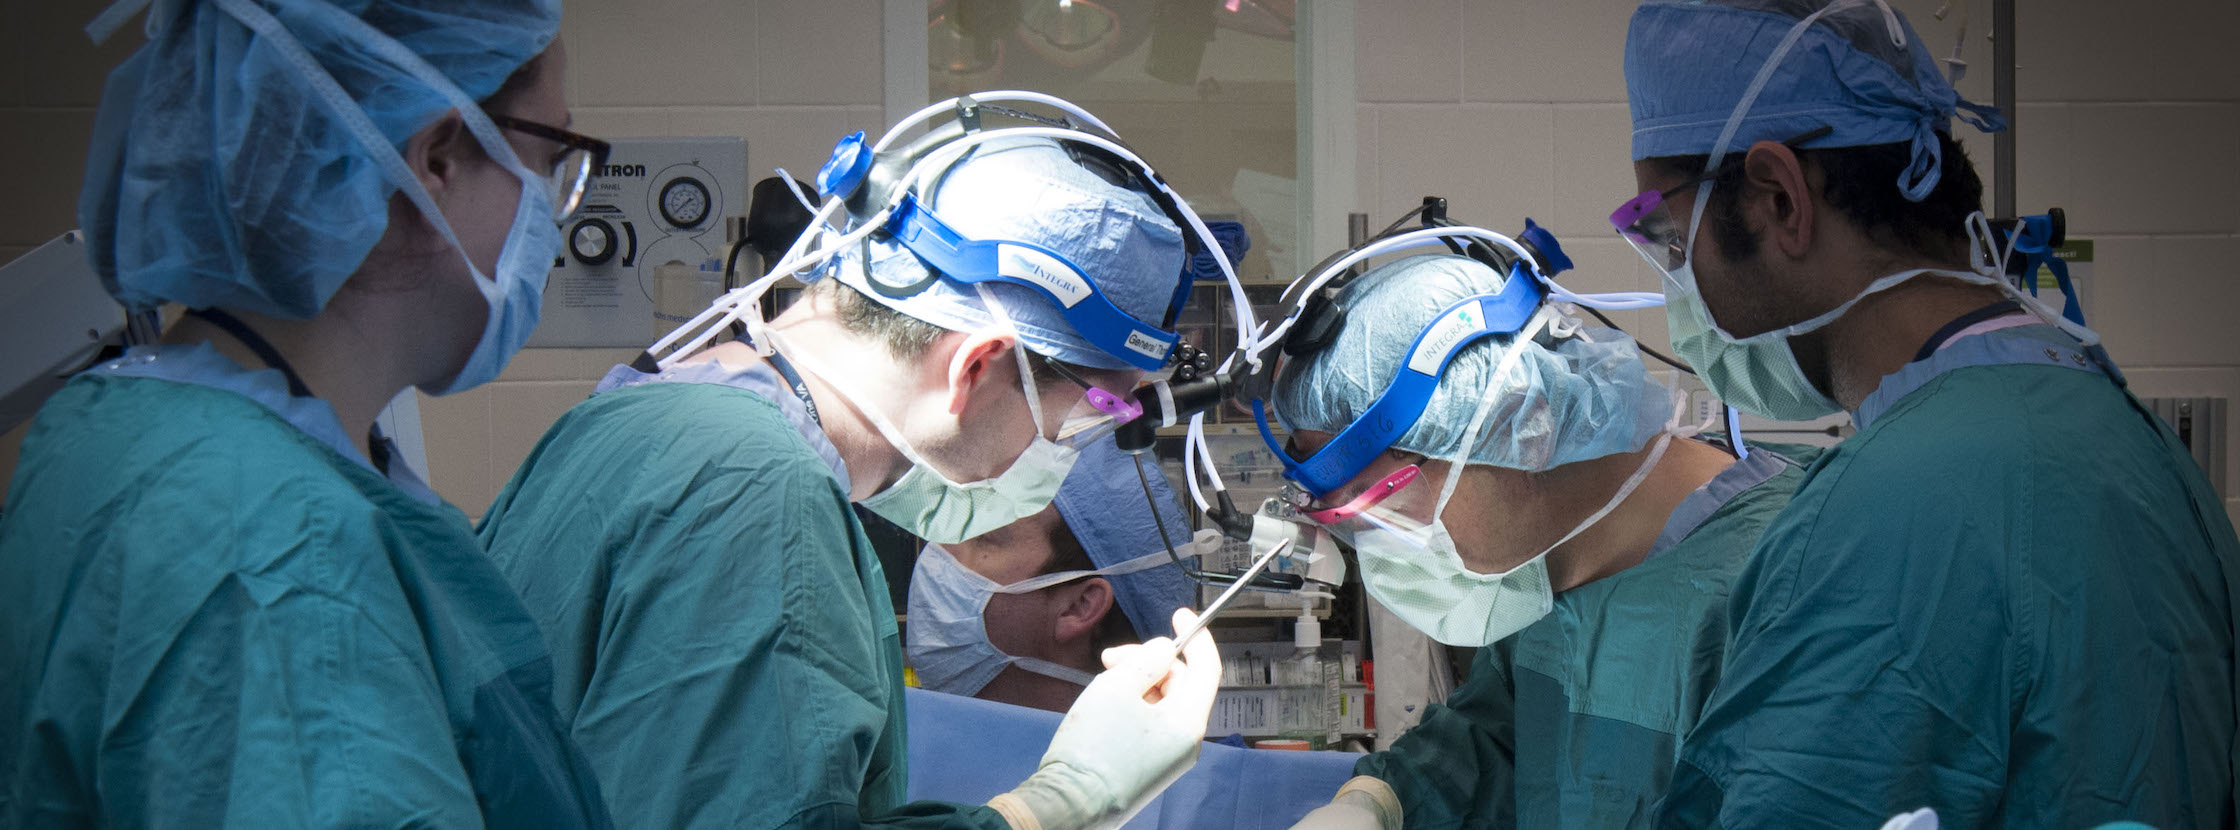 Dr. Chang and team in the operating room